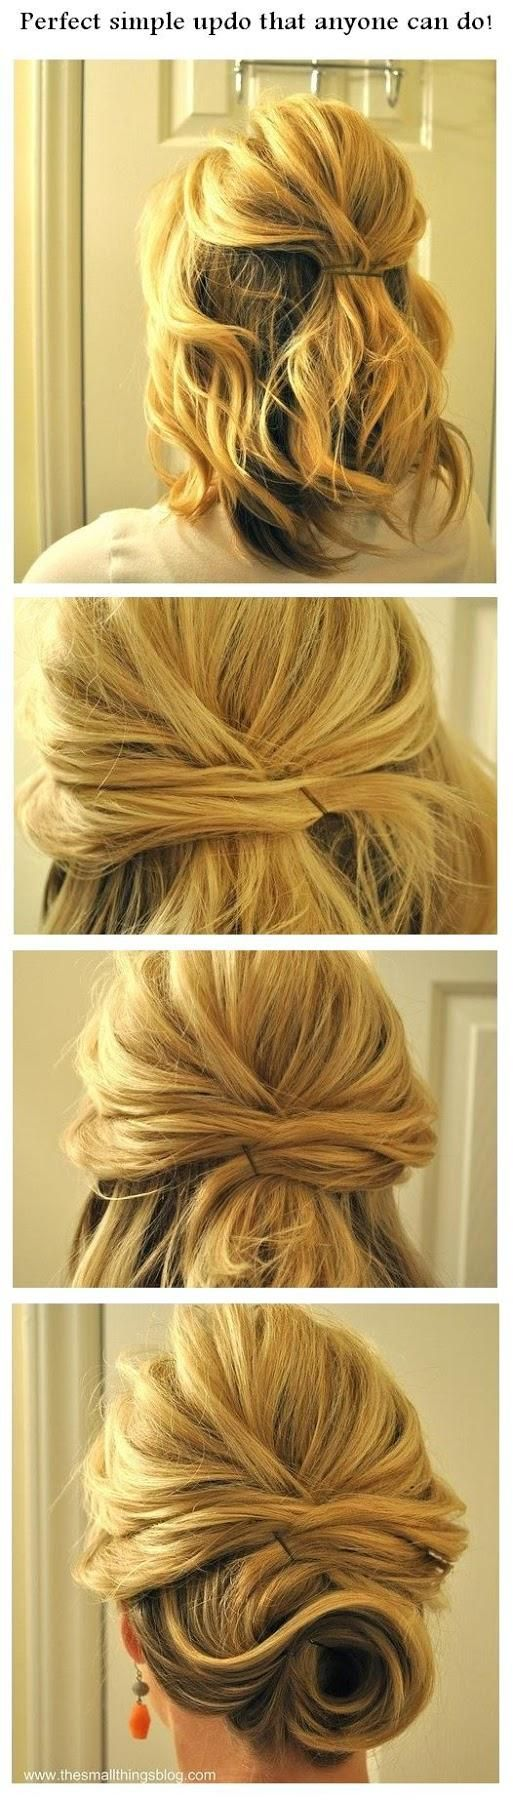 Wedding Hair tips and ideas: Perfect simple updo that anyone can do!